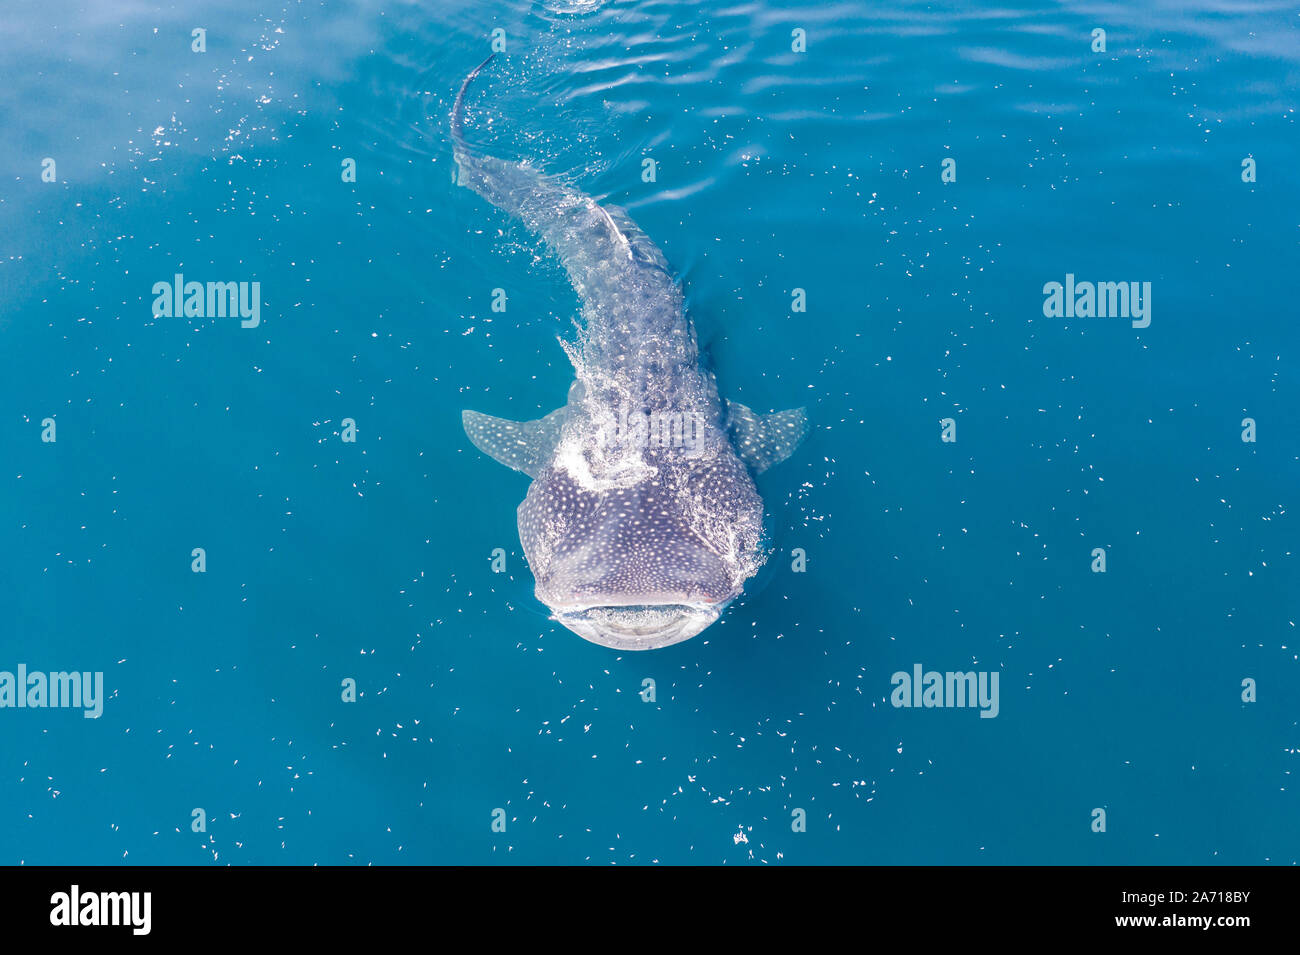 A whale shark, Rhincodon typus, slowly swims near the surface feeding on krill in Indonesia. This is the largest known extant fish species on Earth. Stock Photo